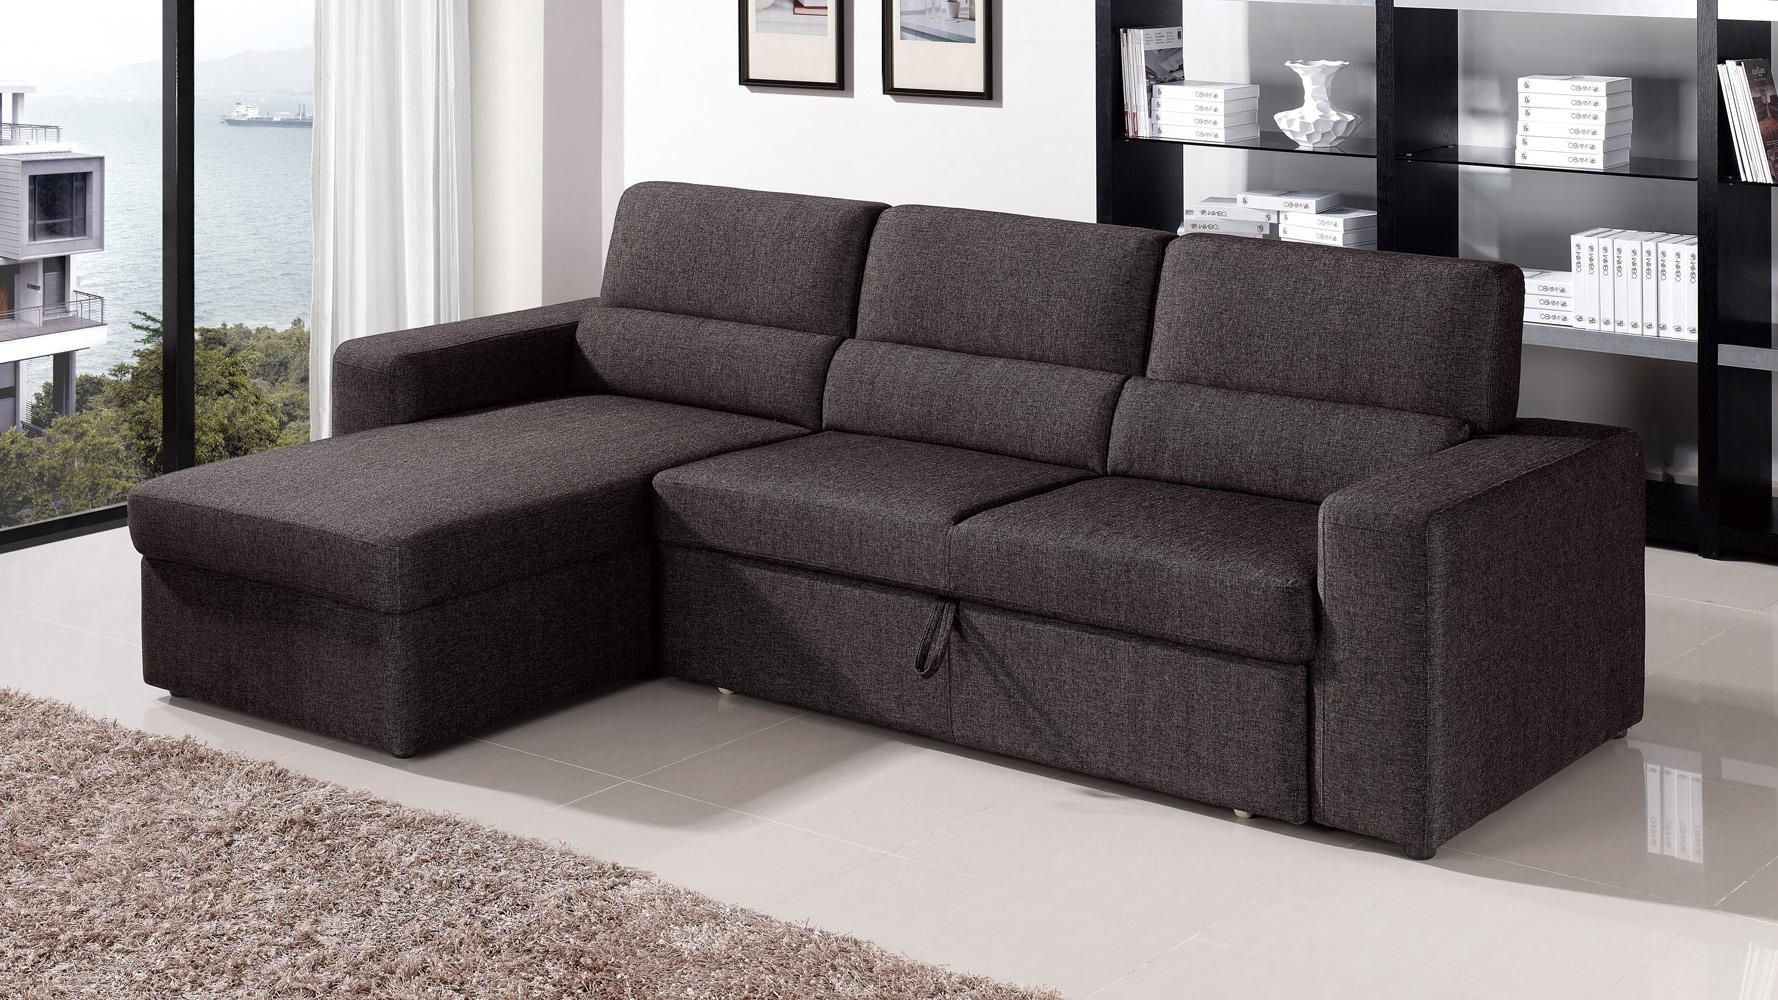 Sectional Pull Out Sleeper Sofa – Ansugallery Within Pull Out Sectional (Image 15 of 20)